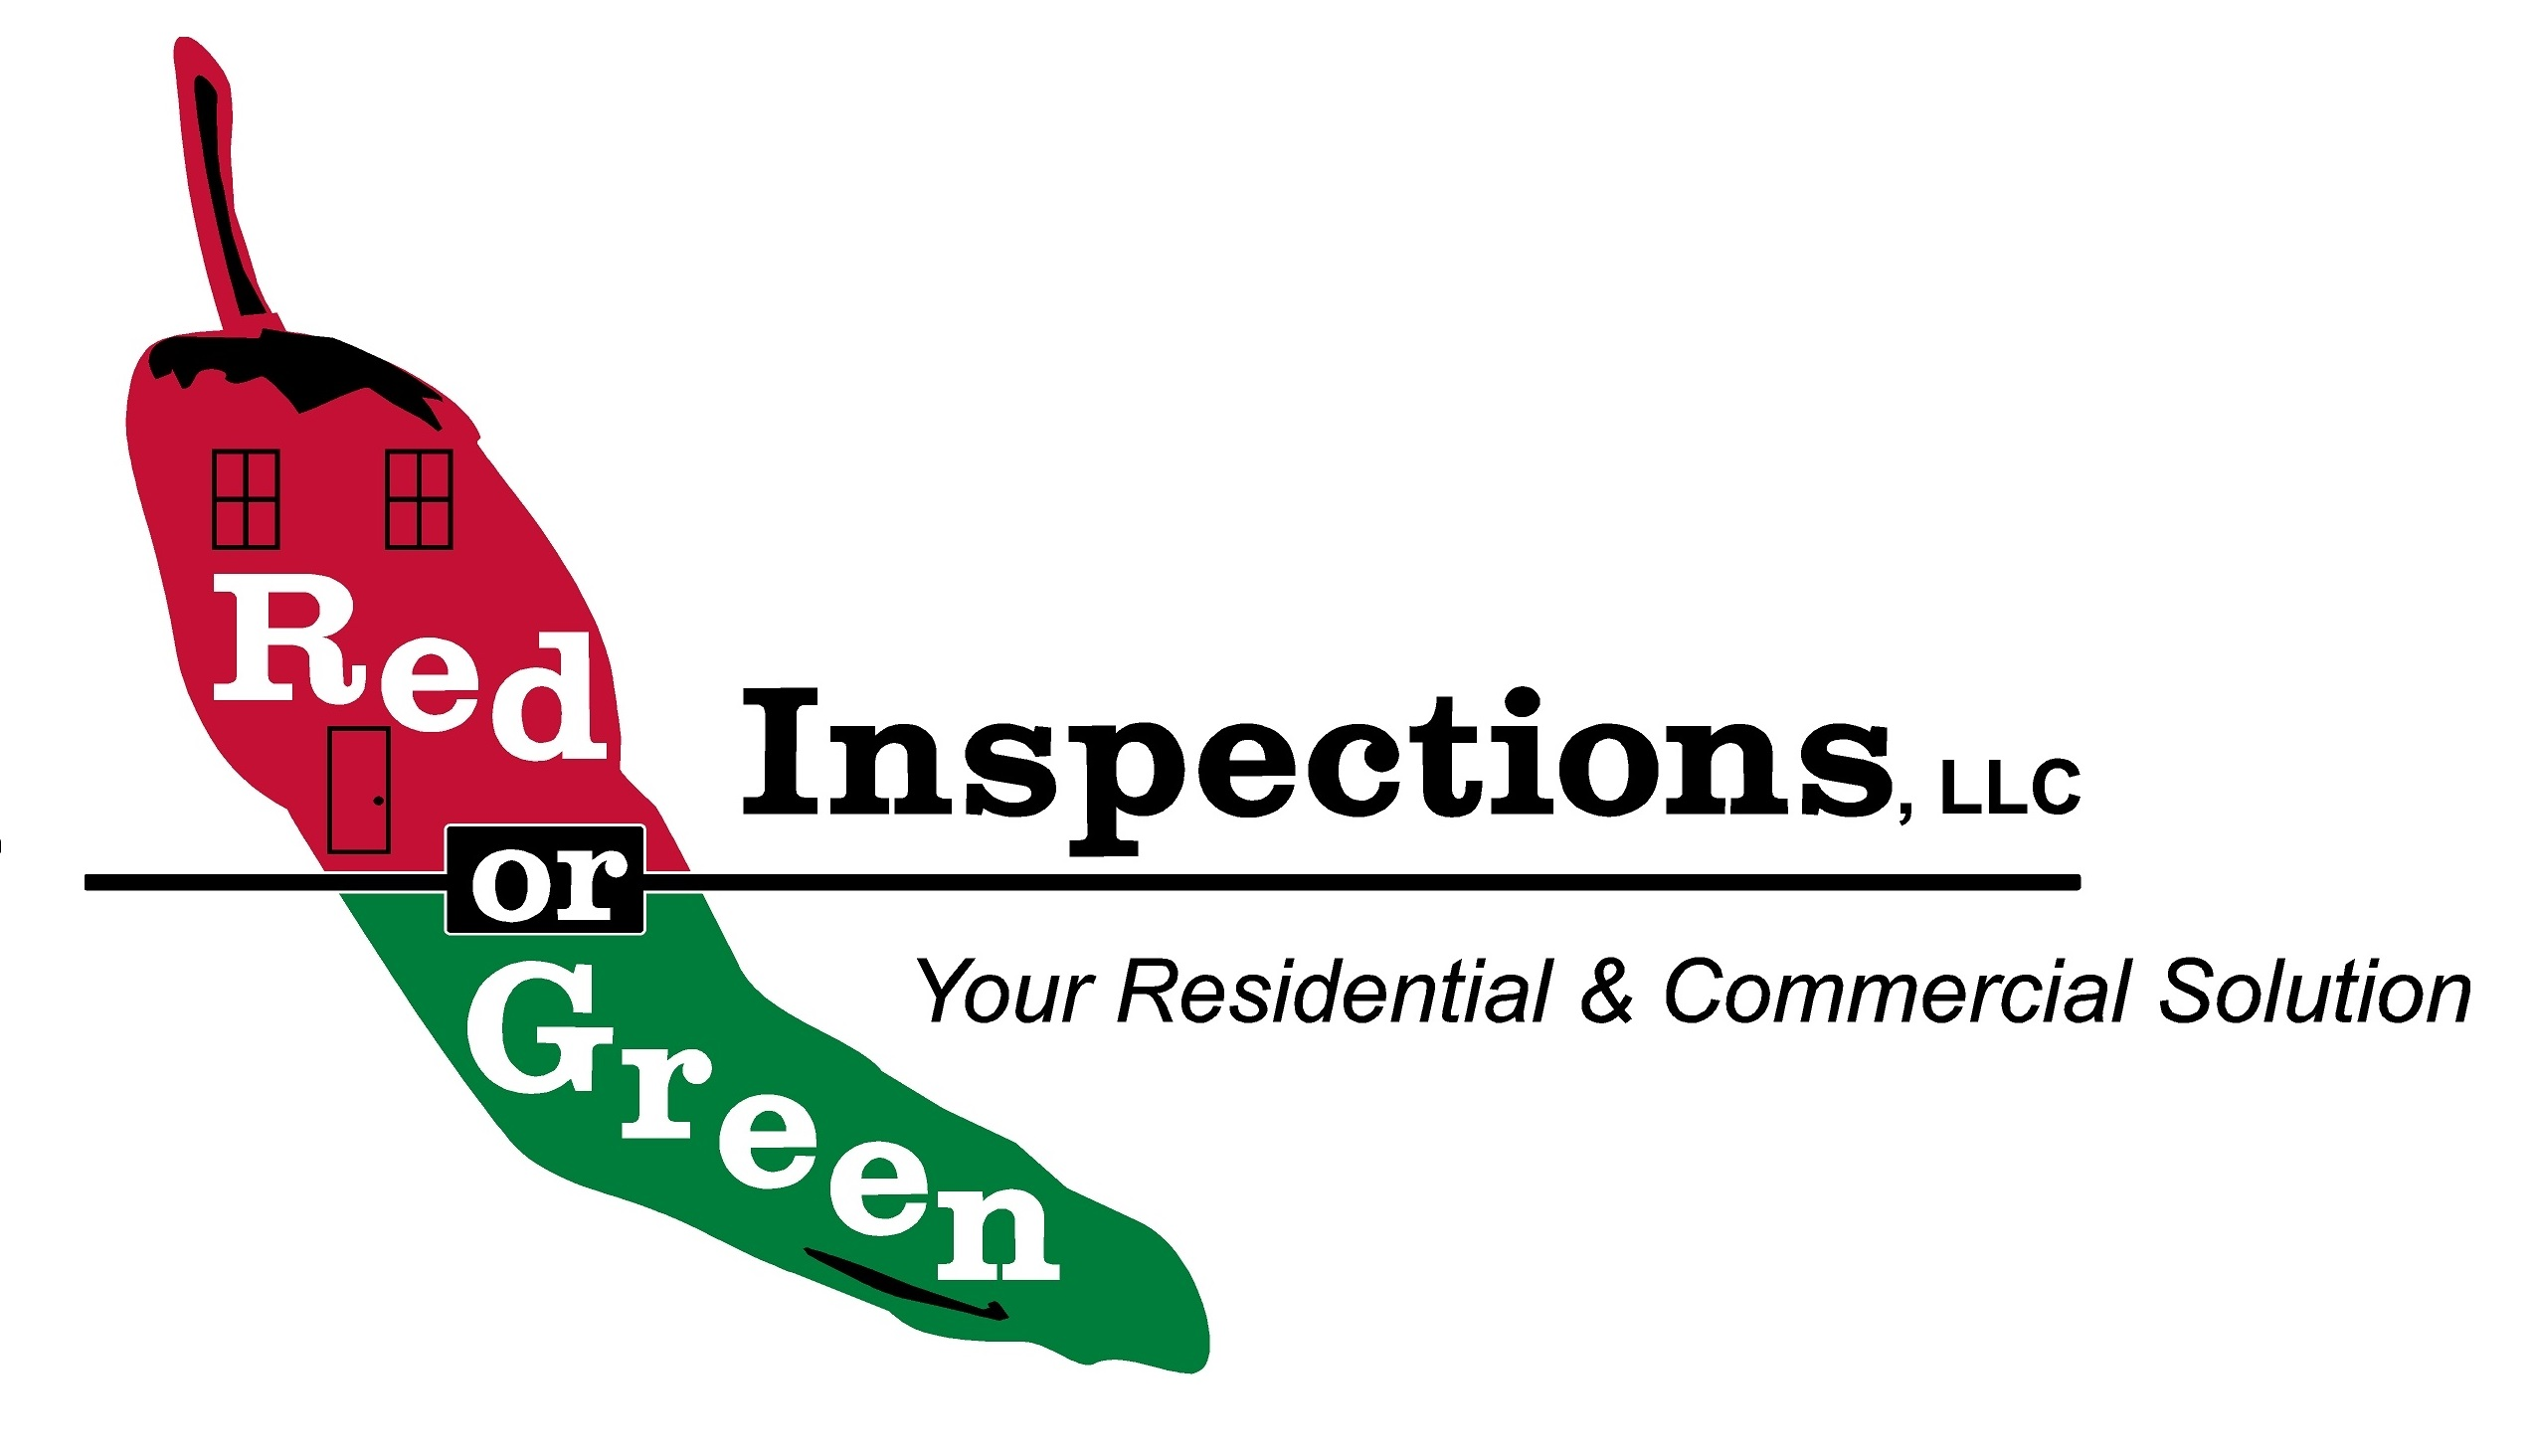 Red or Green Inspections LLC logo